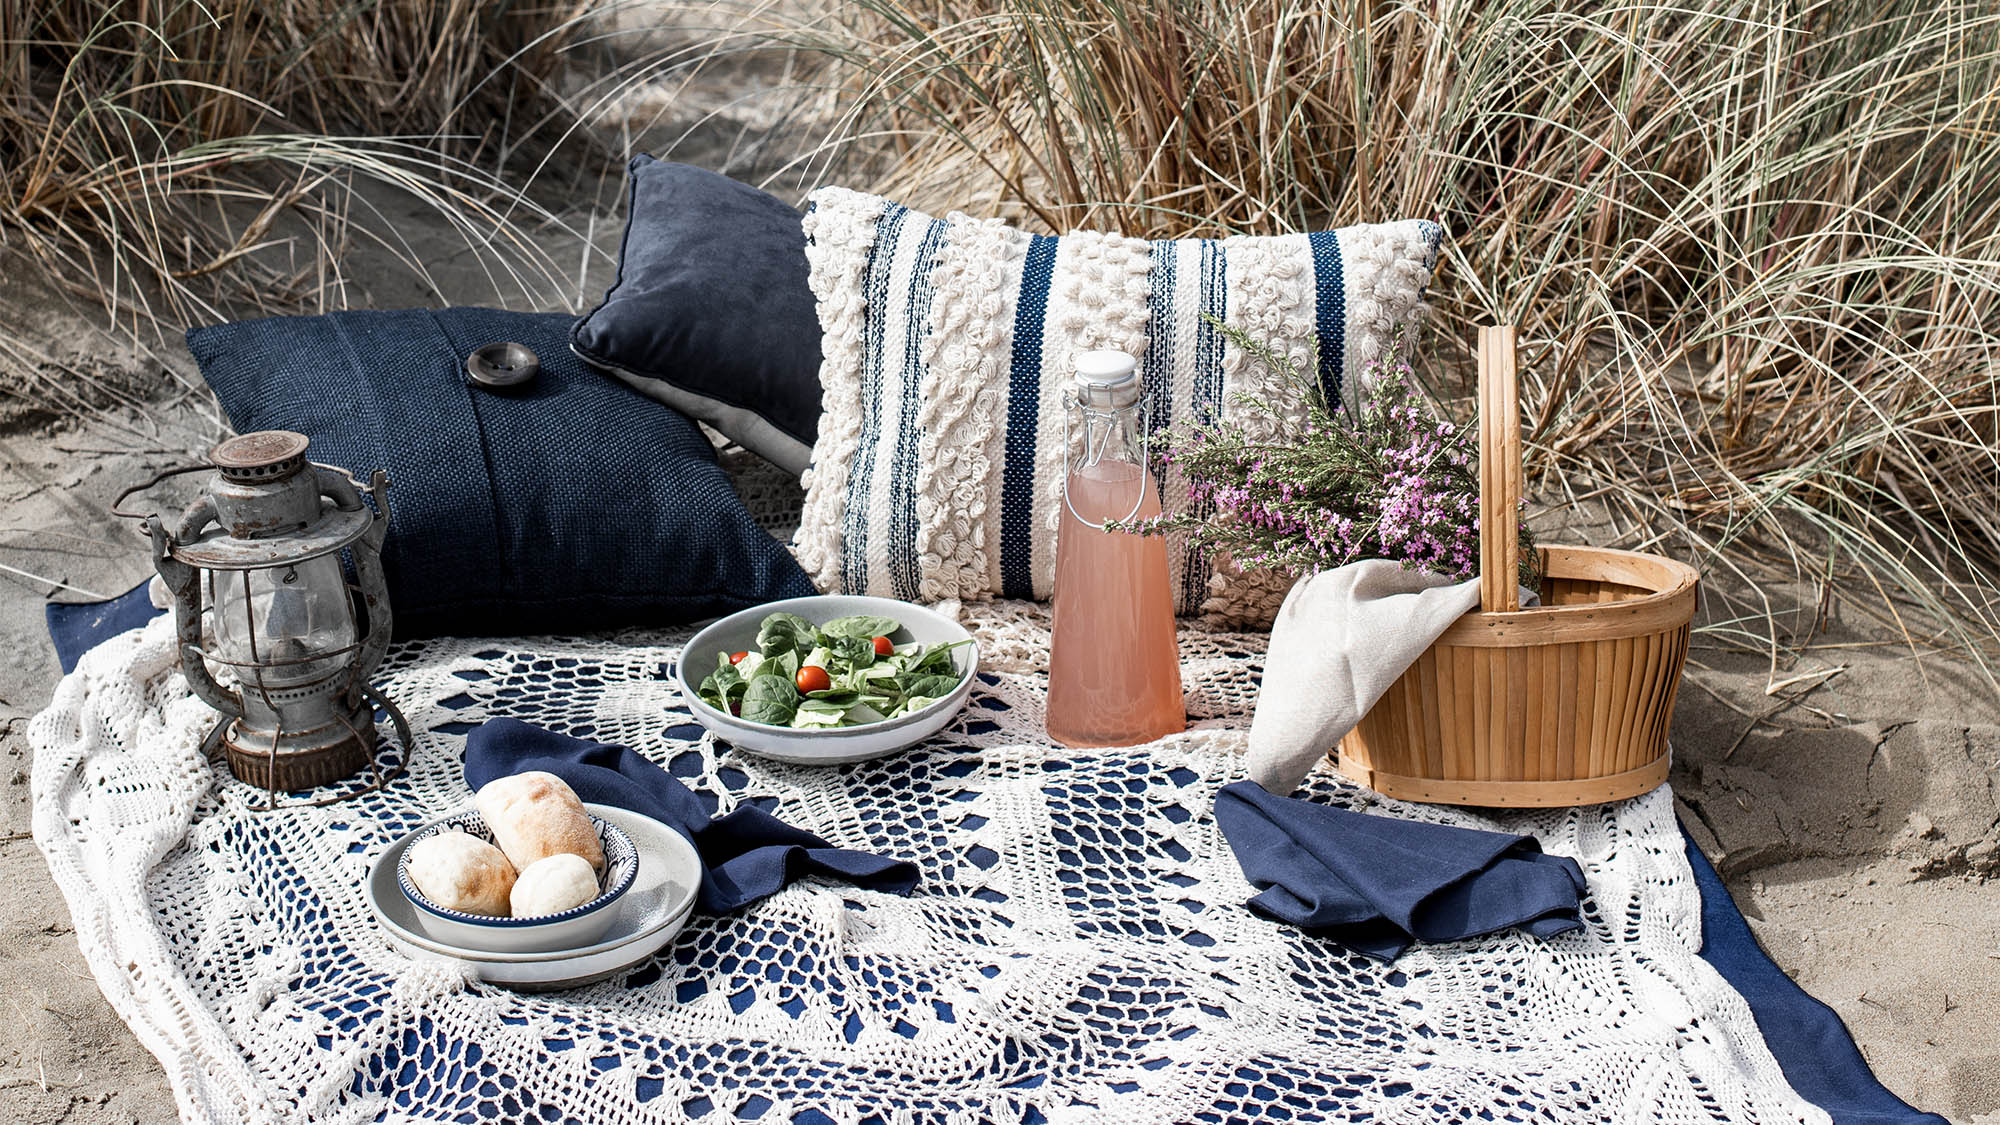 Picnic Food and Drink on Blanket at Beach